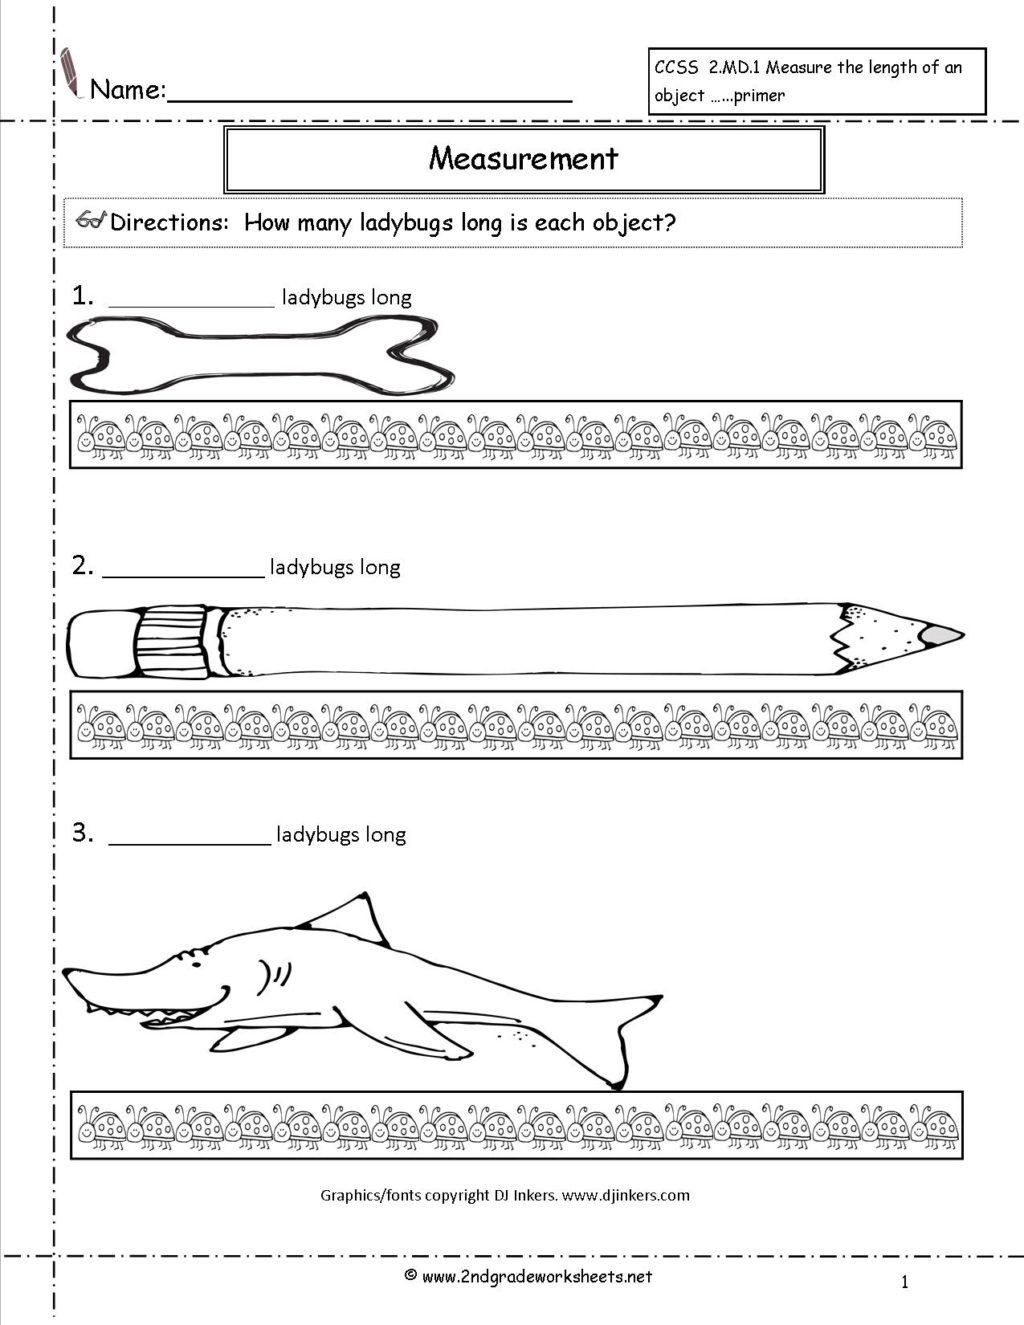 hight resolution of Free Measurement Worksheets   Printable Worksheets and Activities for  Teachers